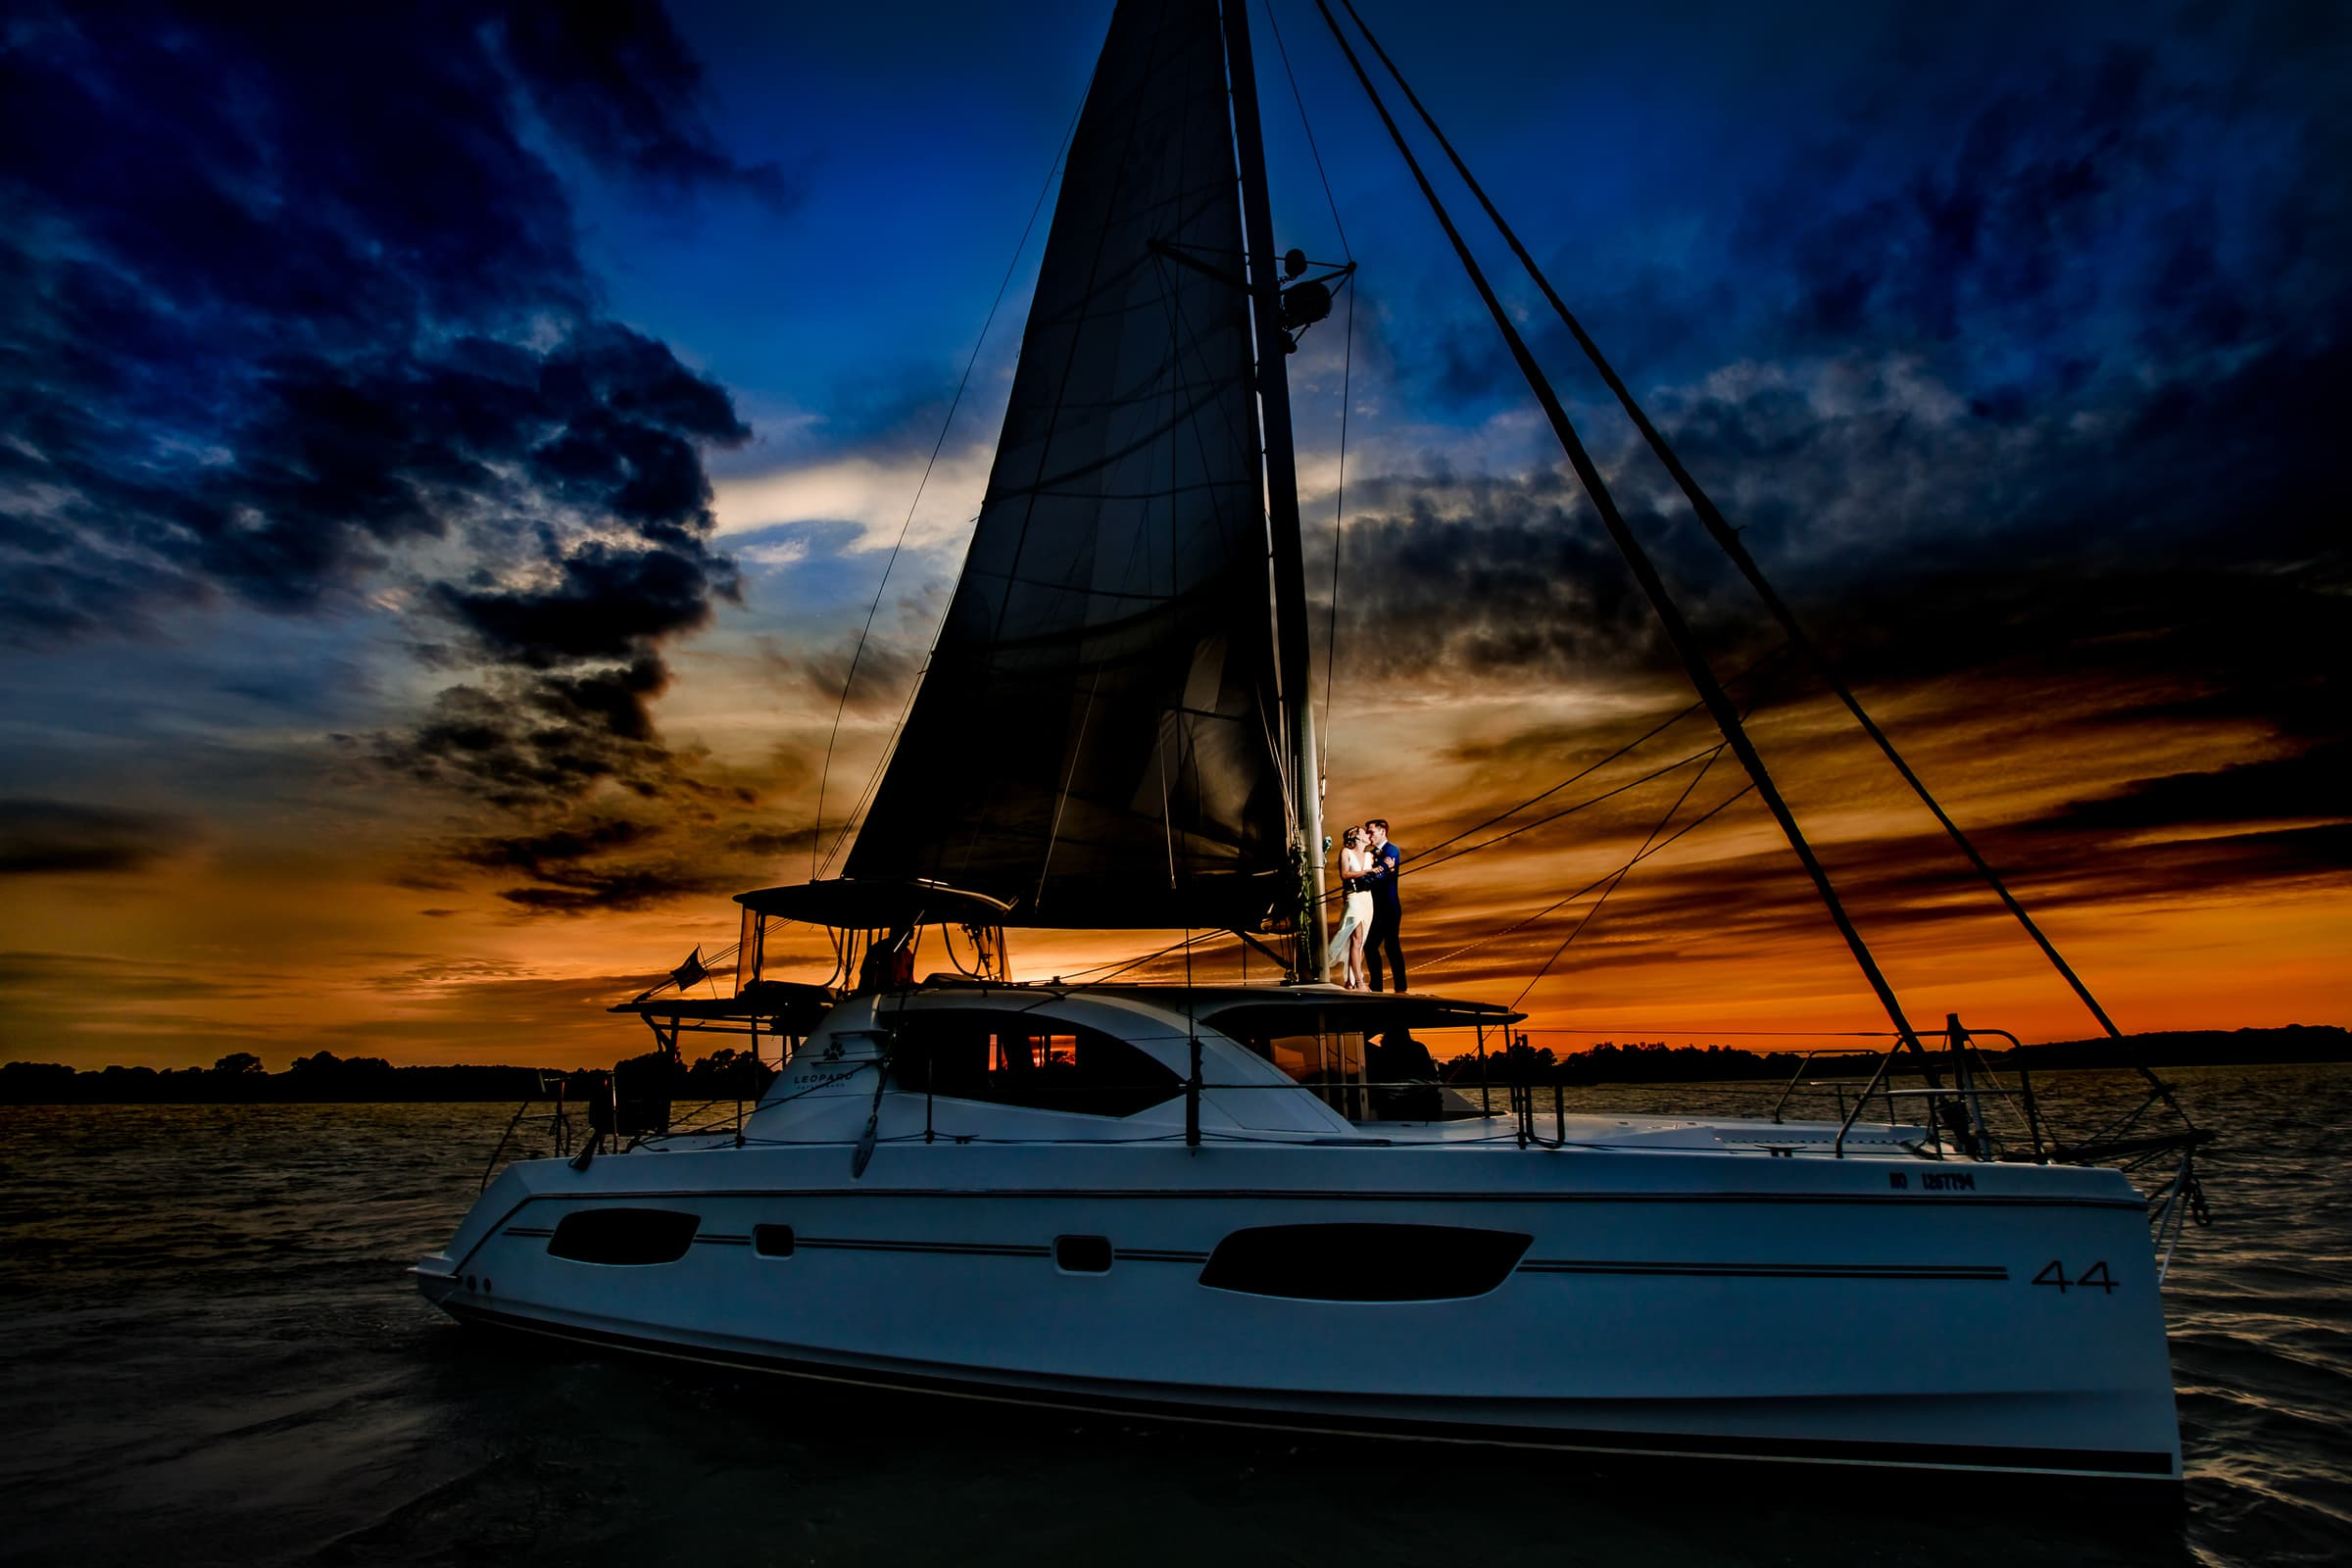 Bride and Groom beautifully lit up at sunset on their catamaran sailboat for their Chesapeake Bay Wedding.